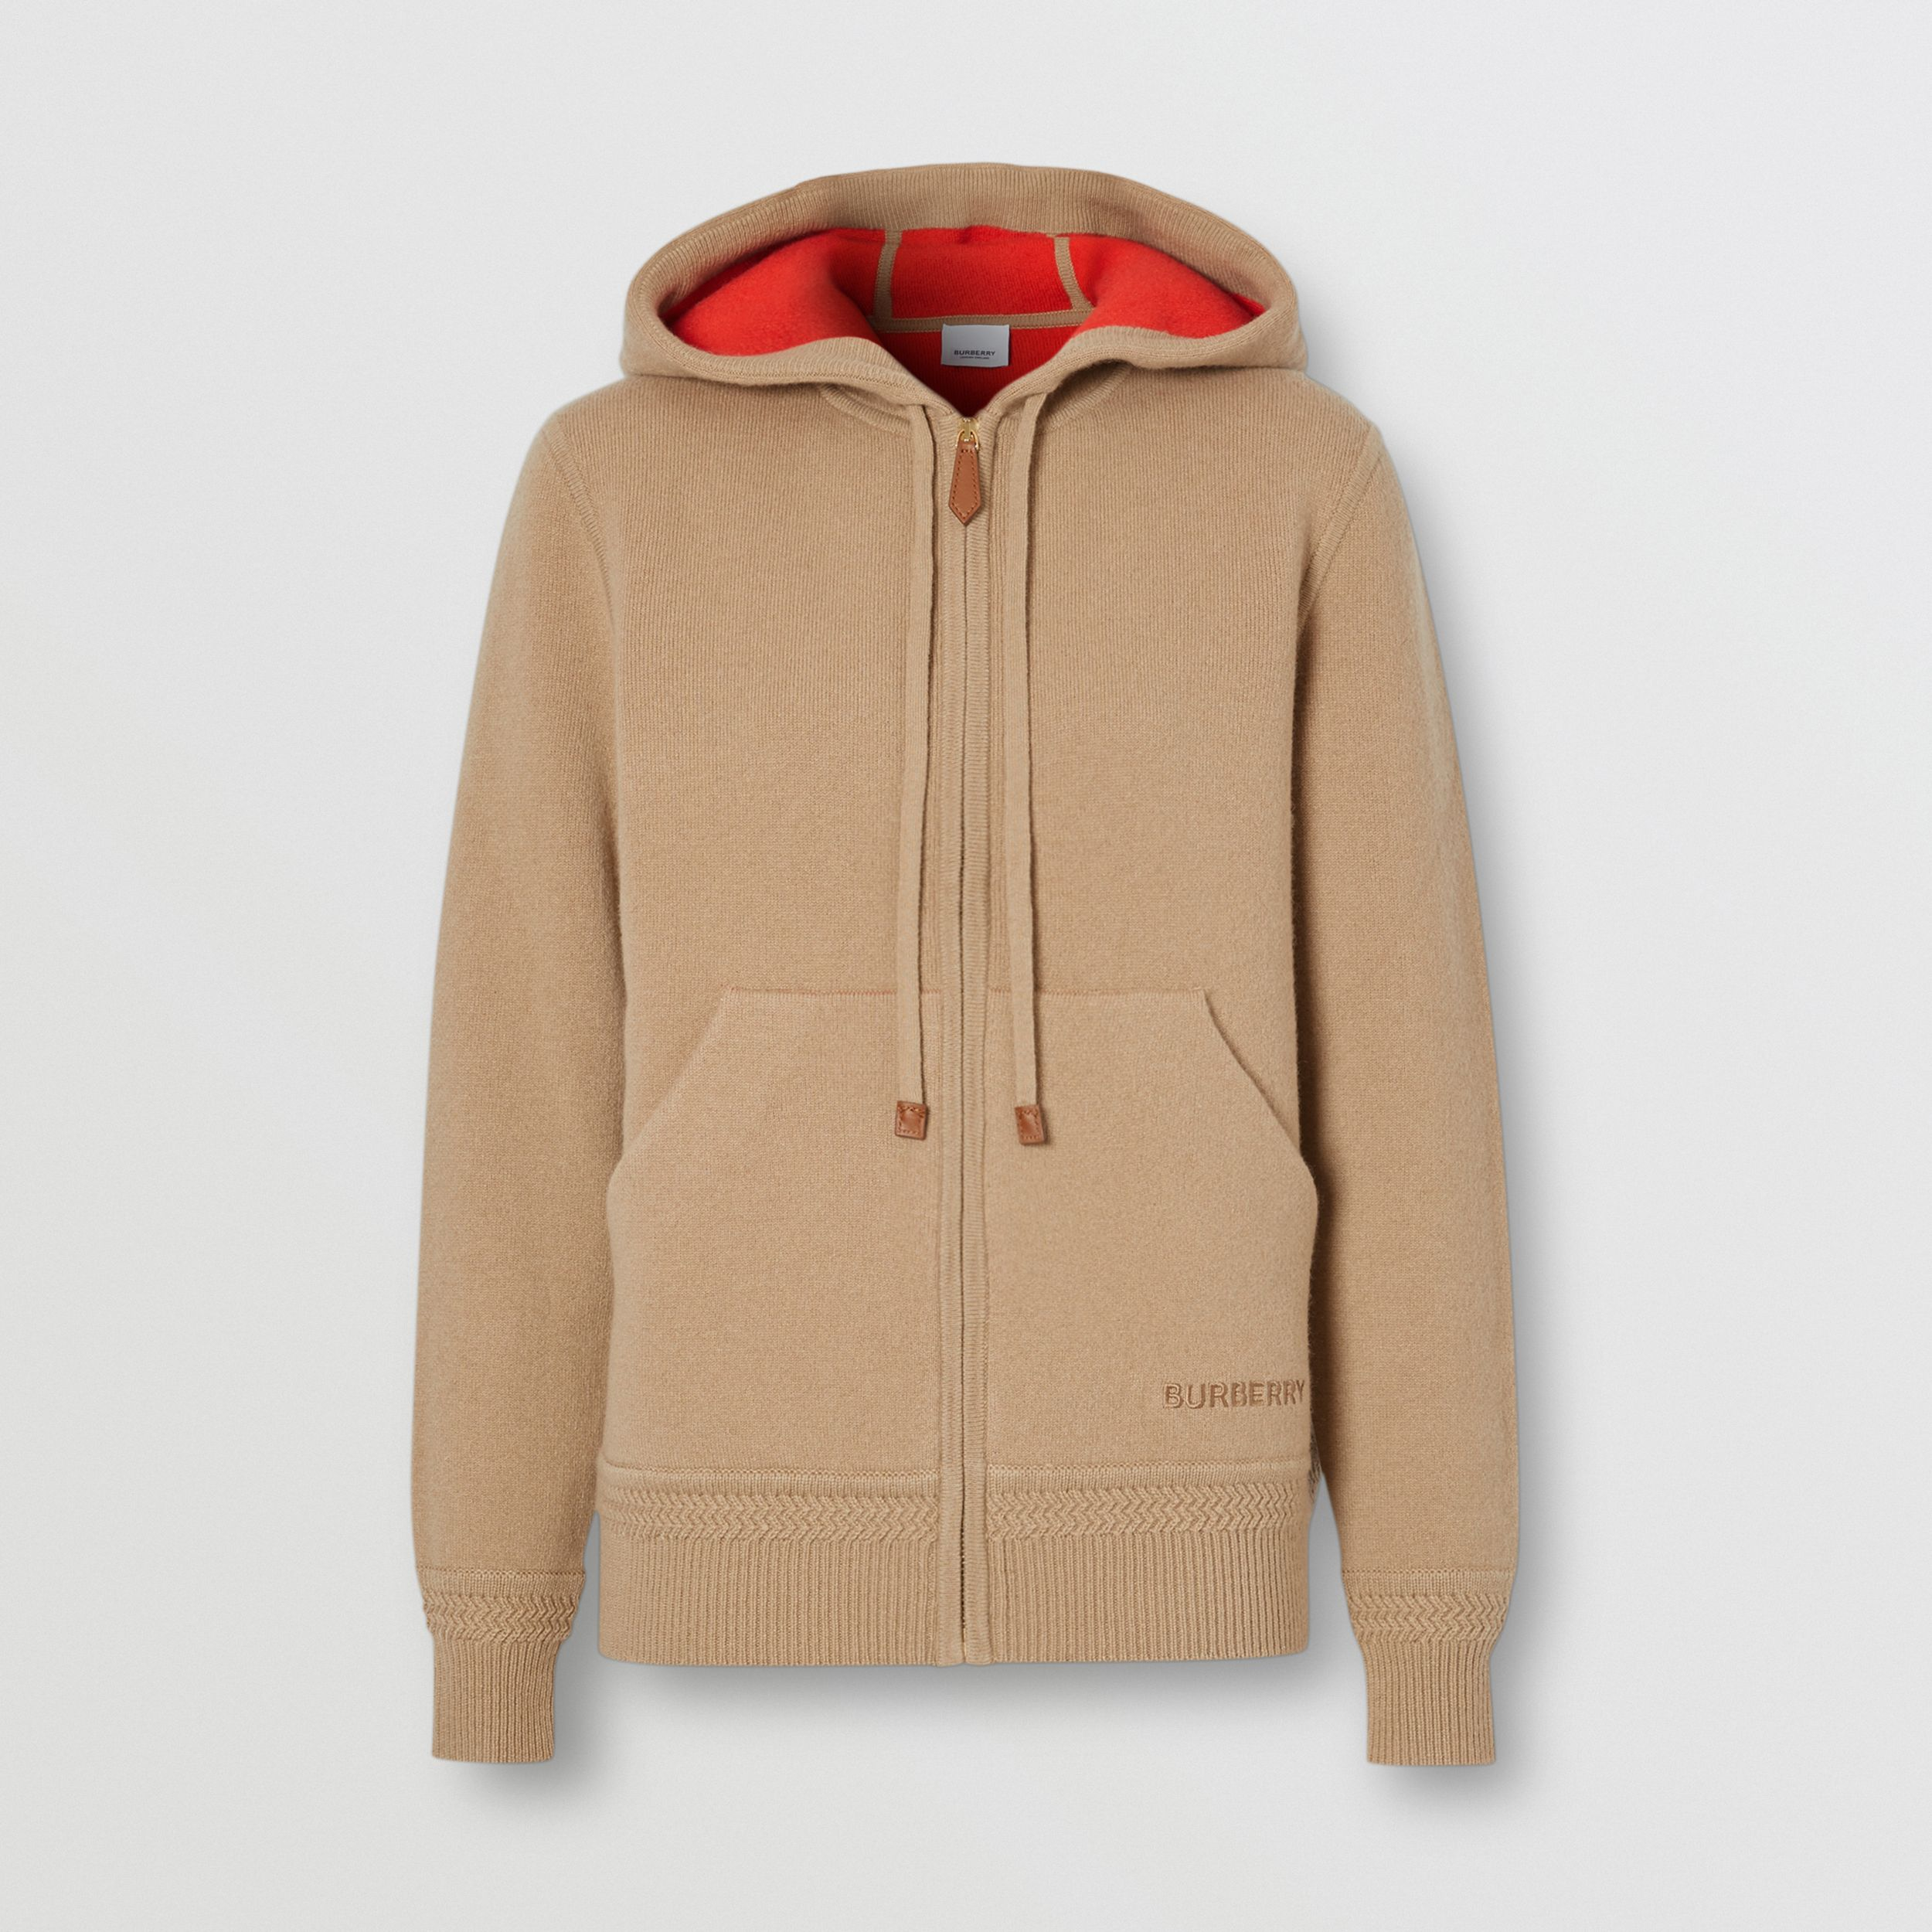 Embroidered Logo Cashmere Hooded Top in Archive Beige - Women | Burberry Australia - 4